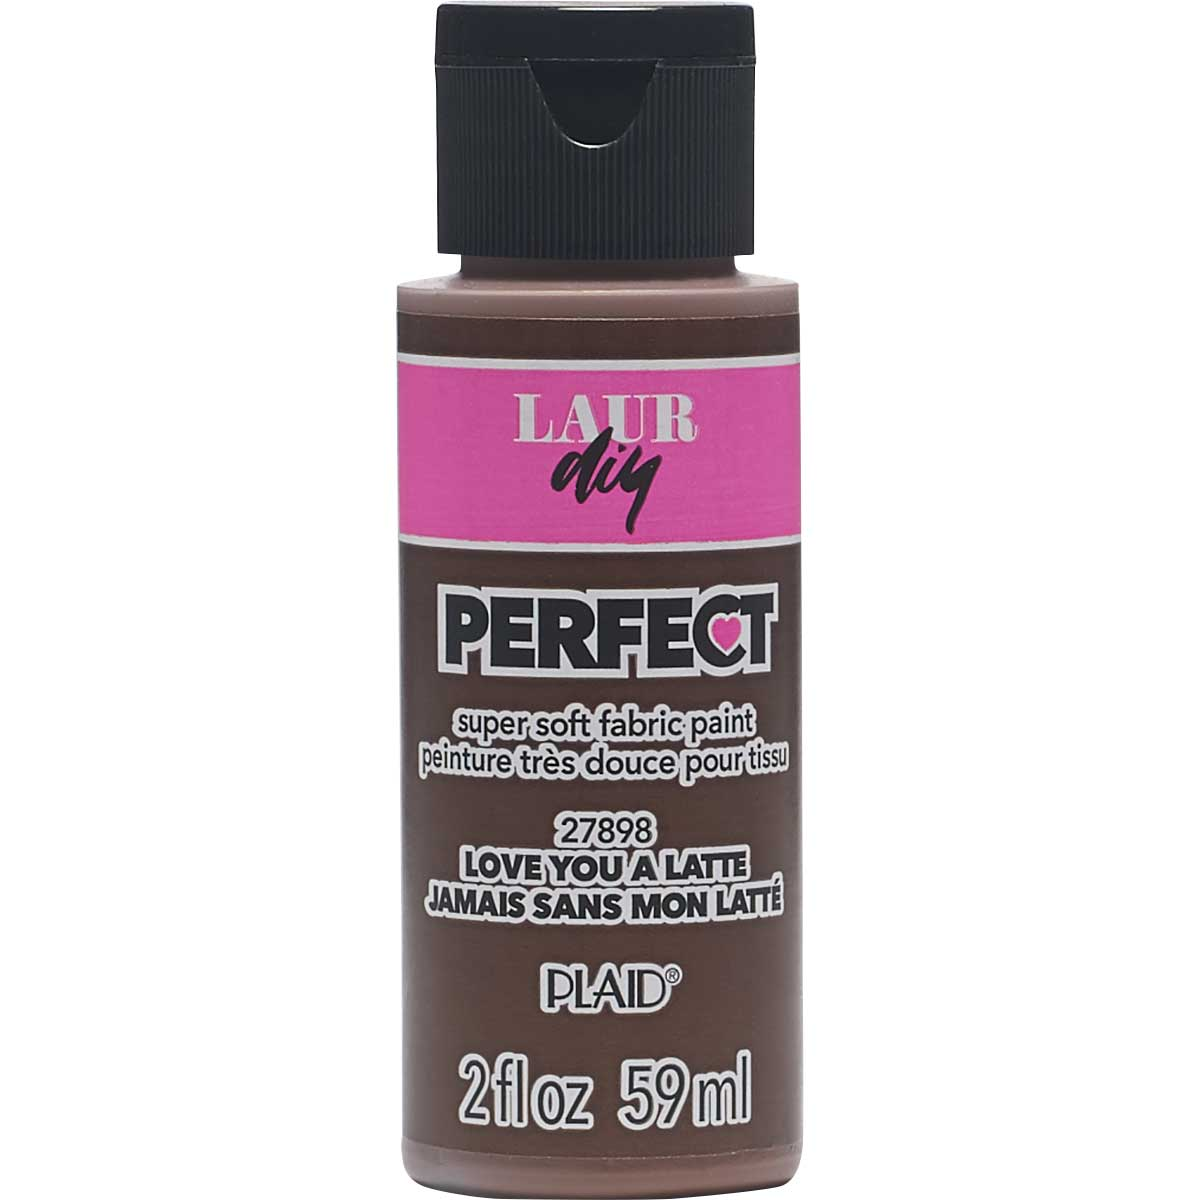 LaurDIY ® Perfect Fabric Paint - Love You A Latte, 2 oz.